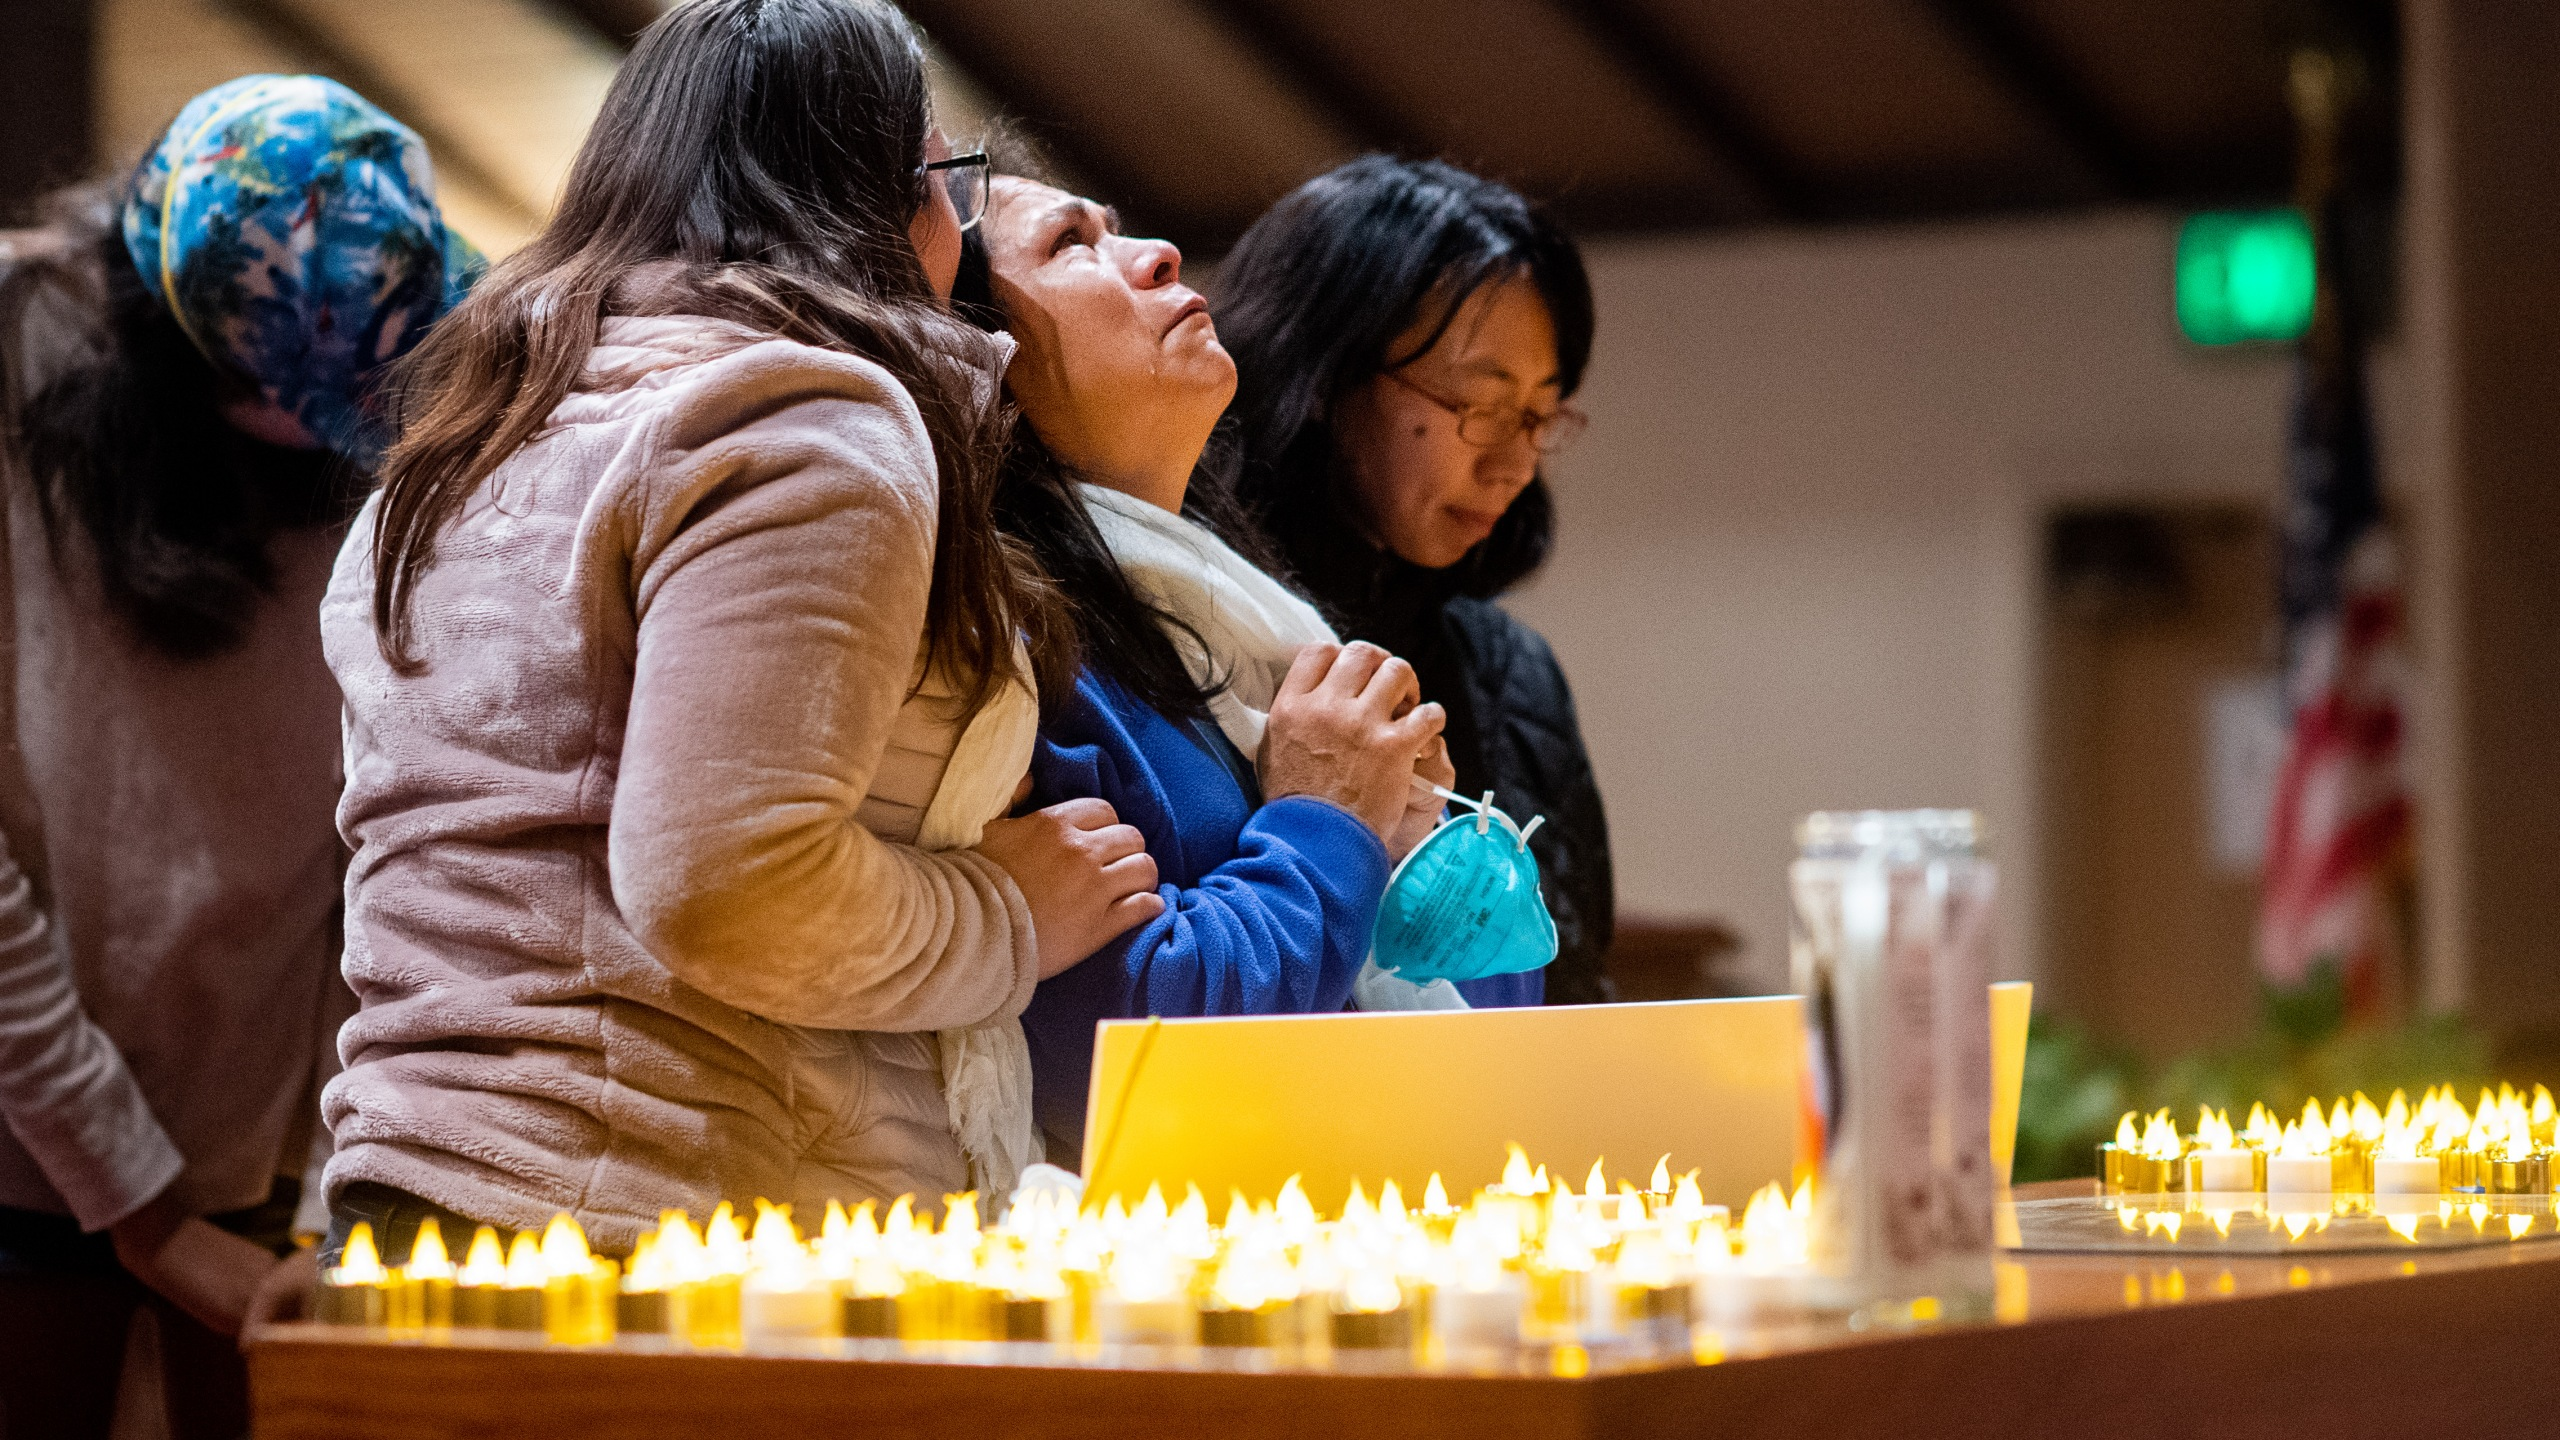 Lidia Steineman, who lost her home in the Camp Fire, prays during a vigil for fire victims at the First Christian Church of Chico on Nov. 18, 2018. (Credit: Noah Berger / Getty Images)